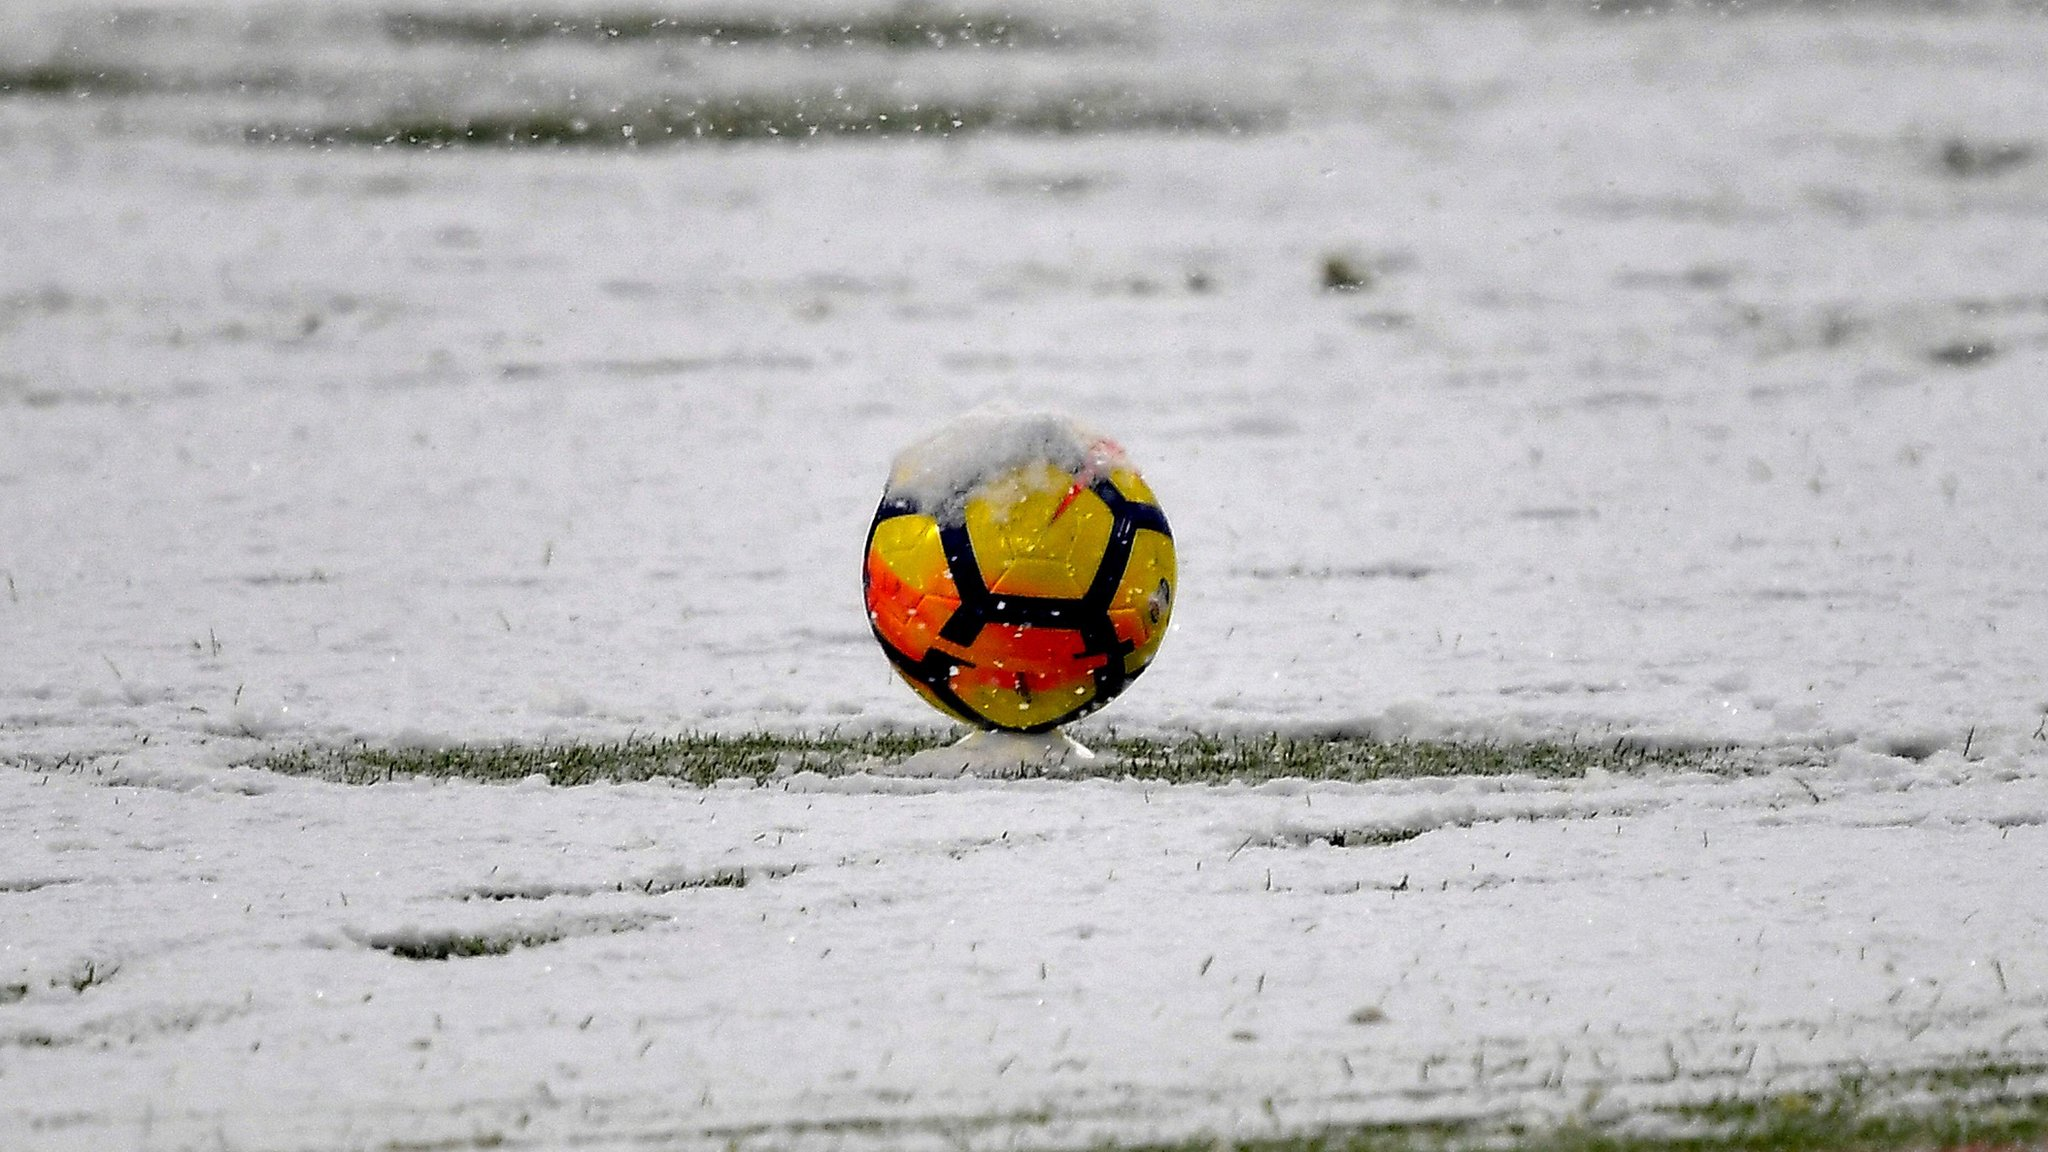 Snow causes postponements in football, rugby union and racing across UK